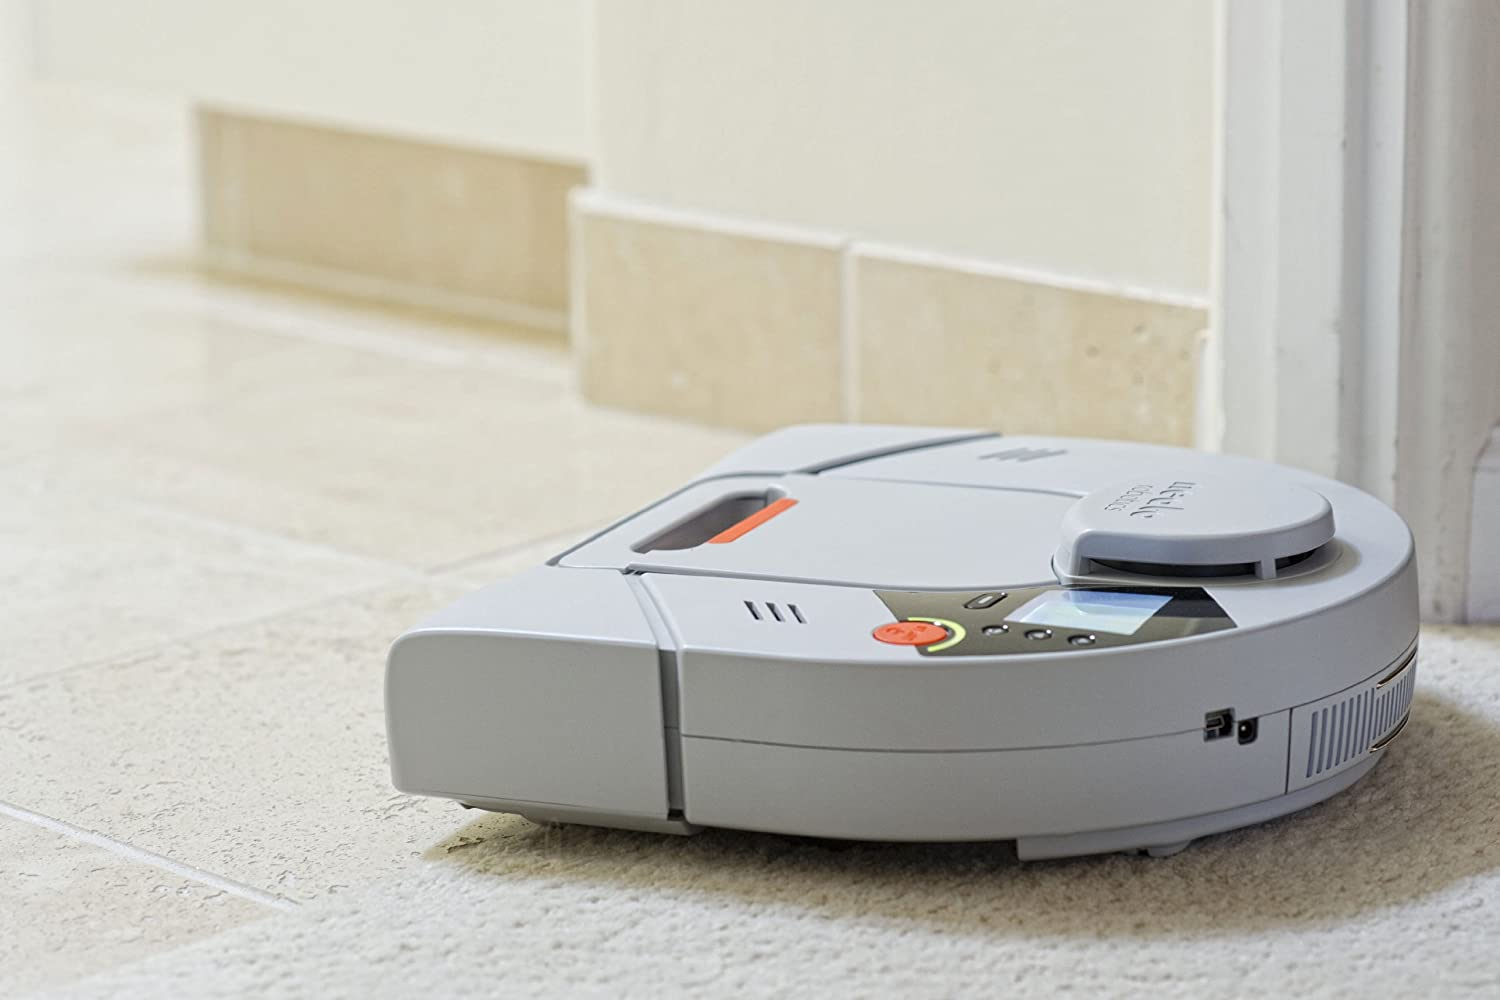 Neato Robotics XV-12 Automatic Vacuum Cleaner $299.99